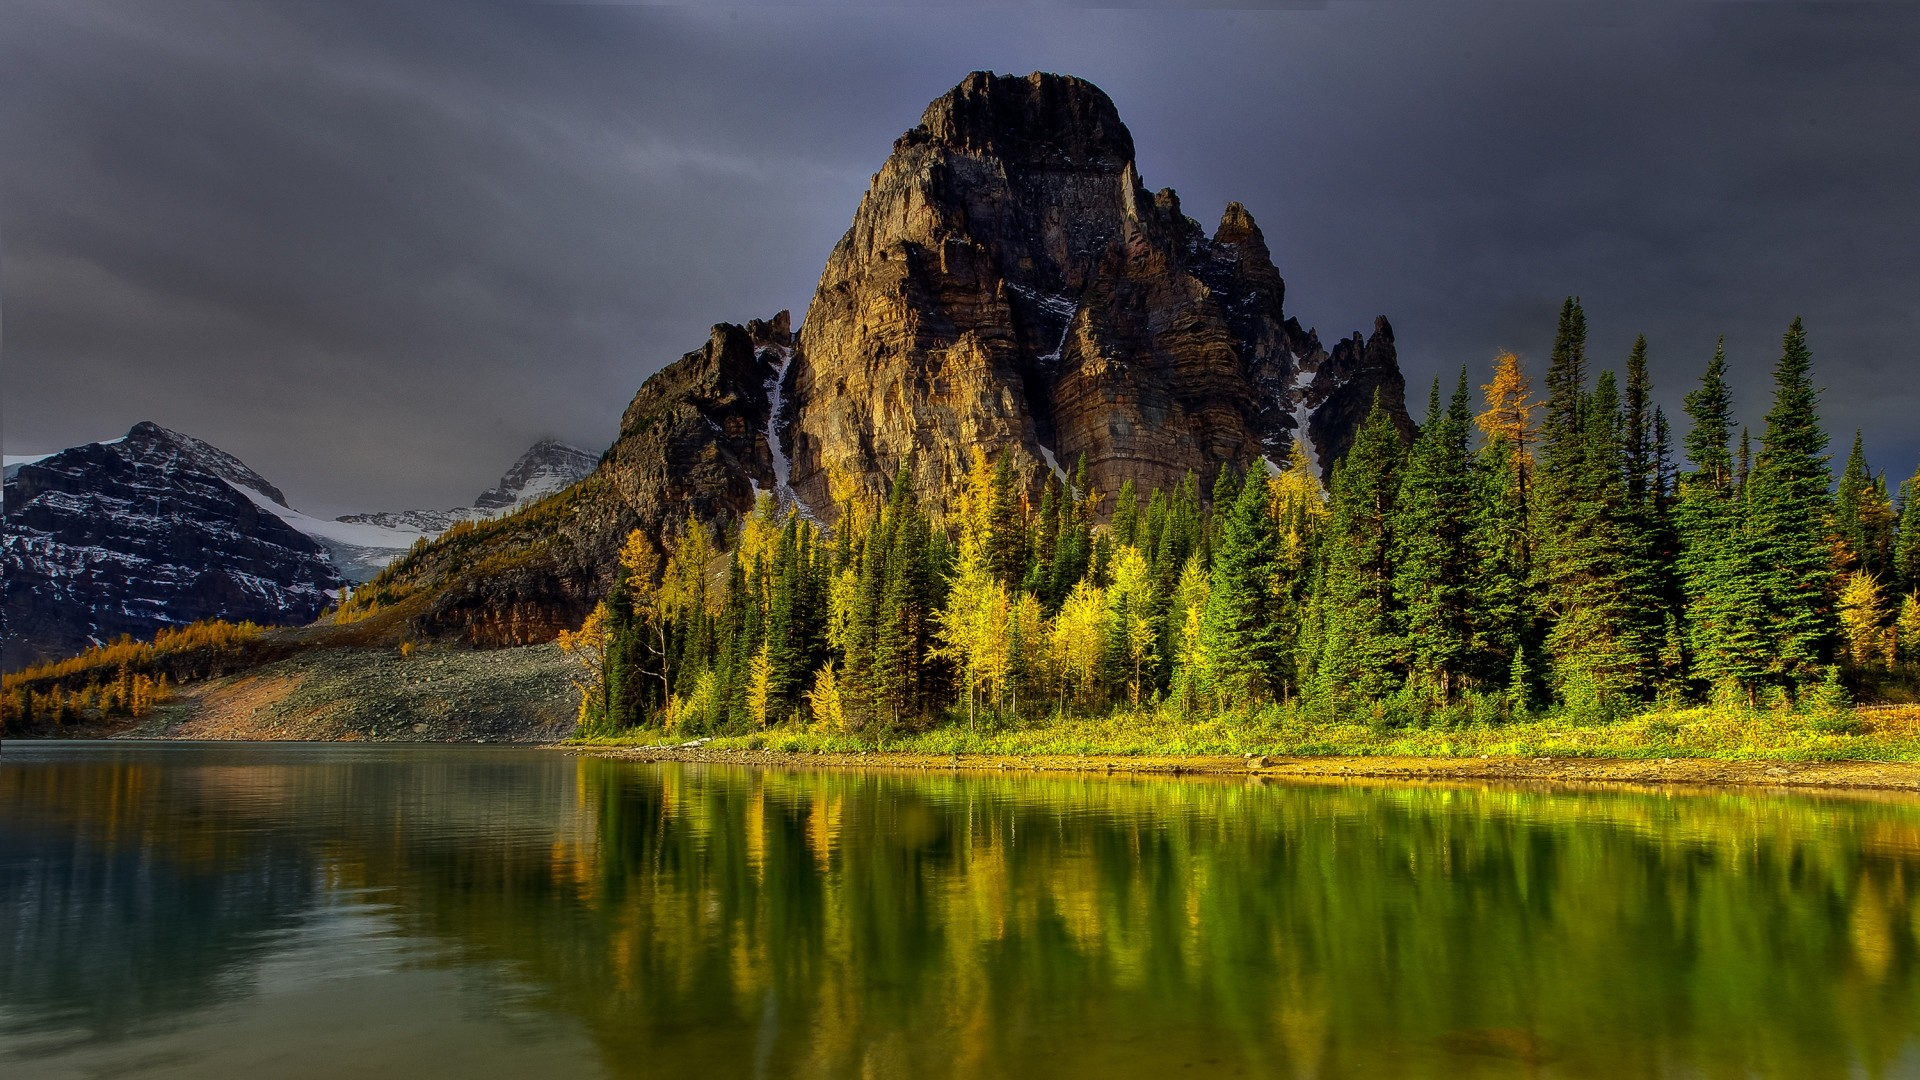 Hd wallpapers nature 1080p 77 images - 3000x1920 wallpaper ...